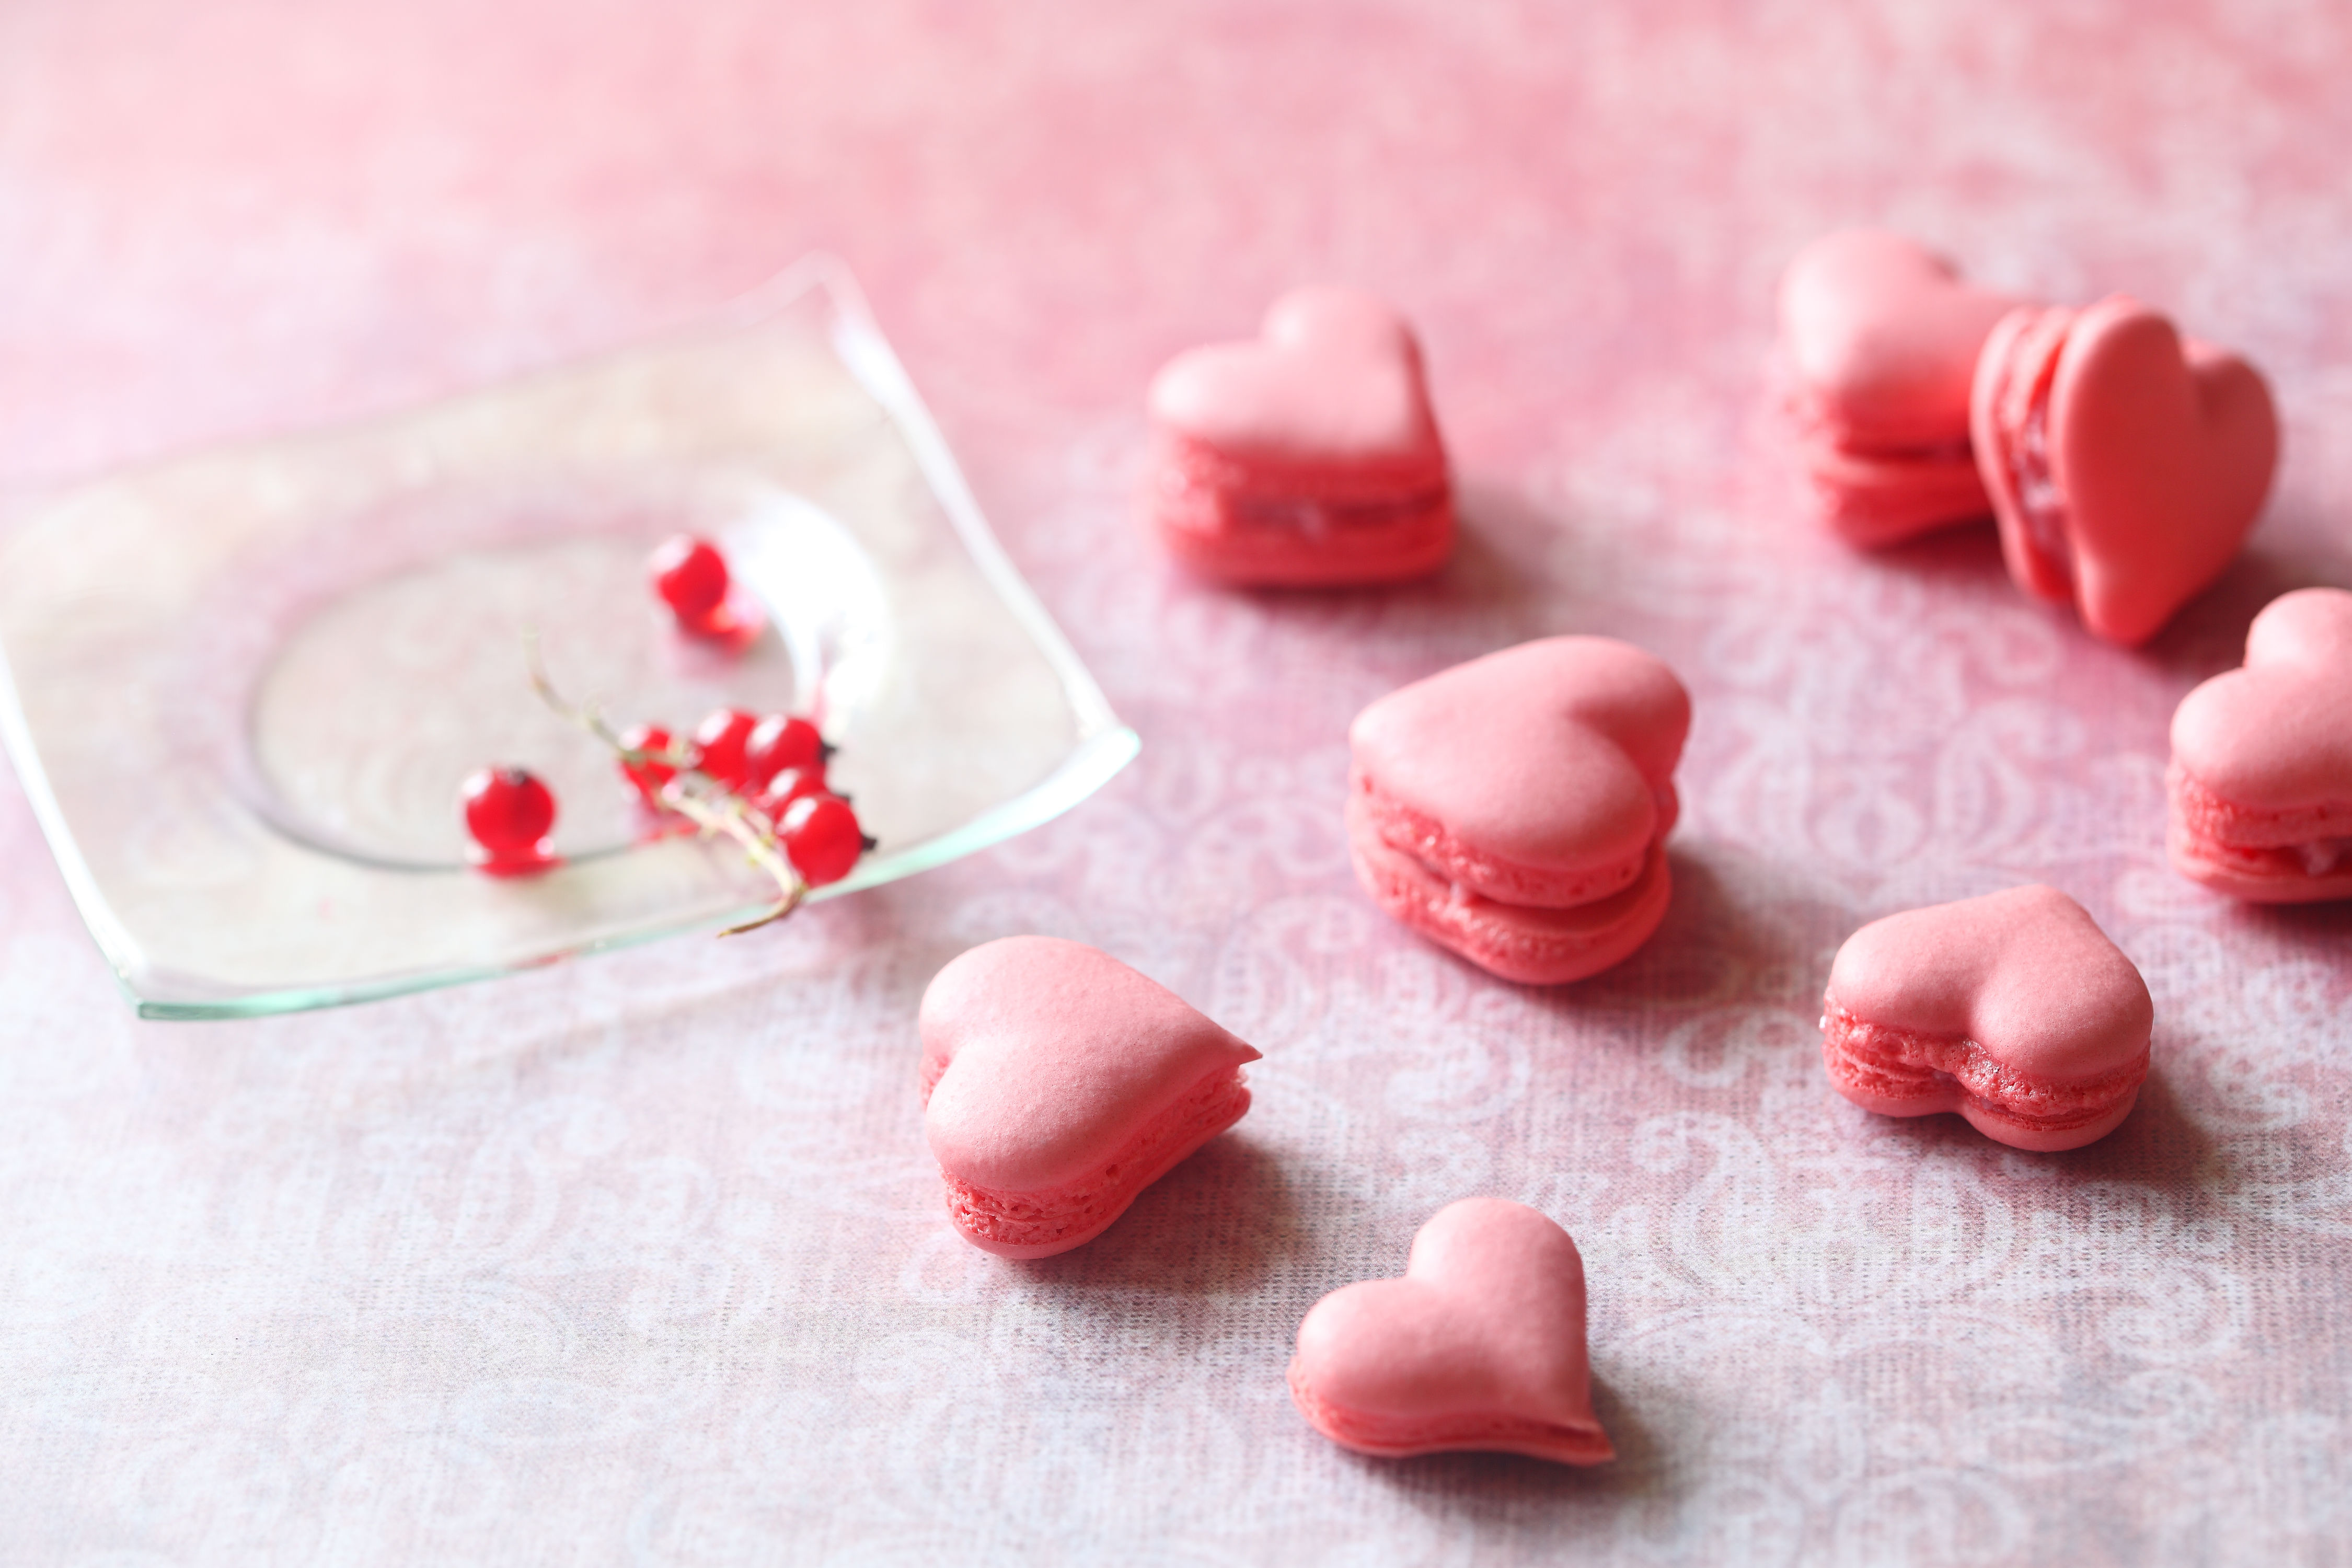 Valentine's Day Special! Costco Officially Sells Heart-Shaped Macarons